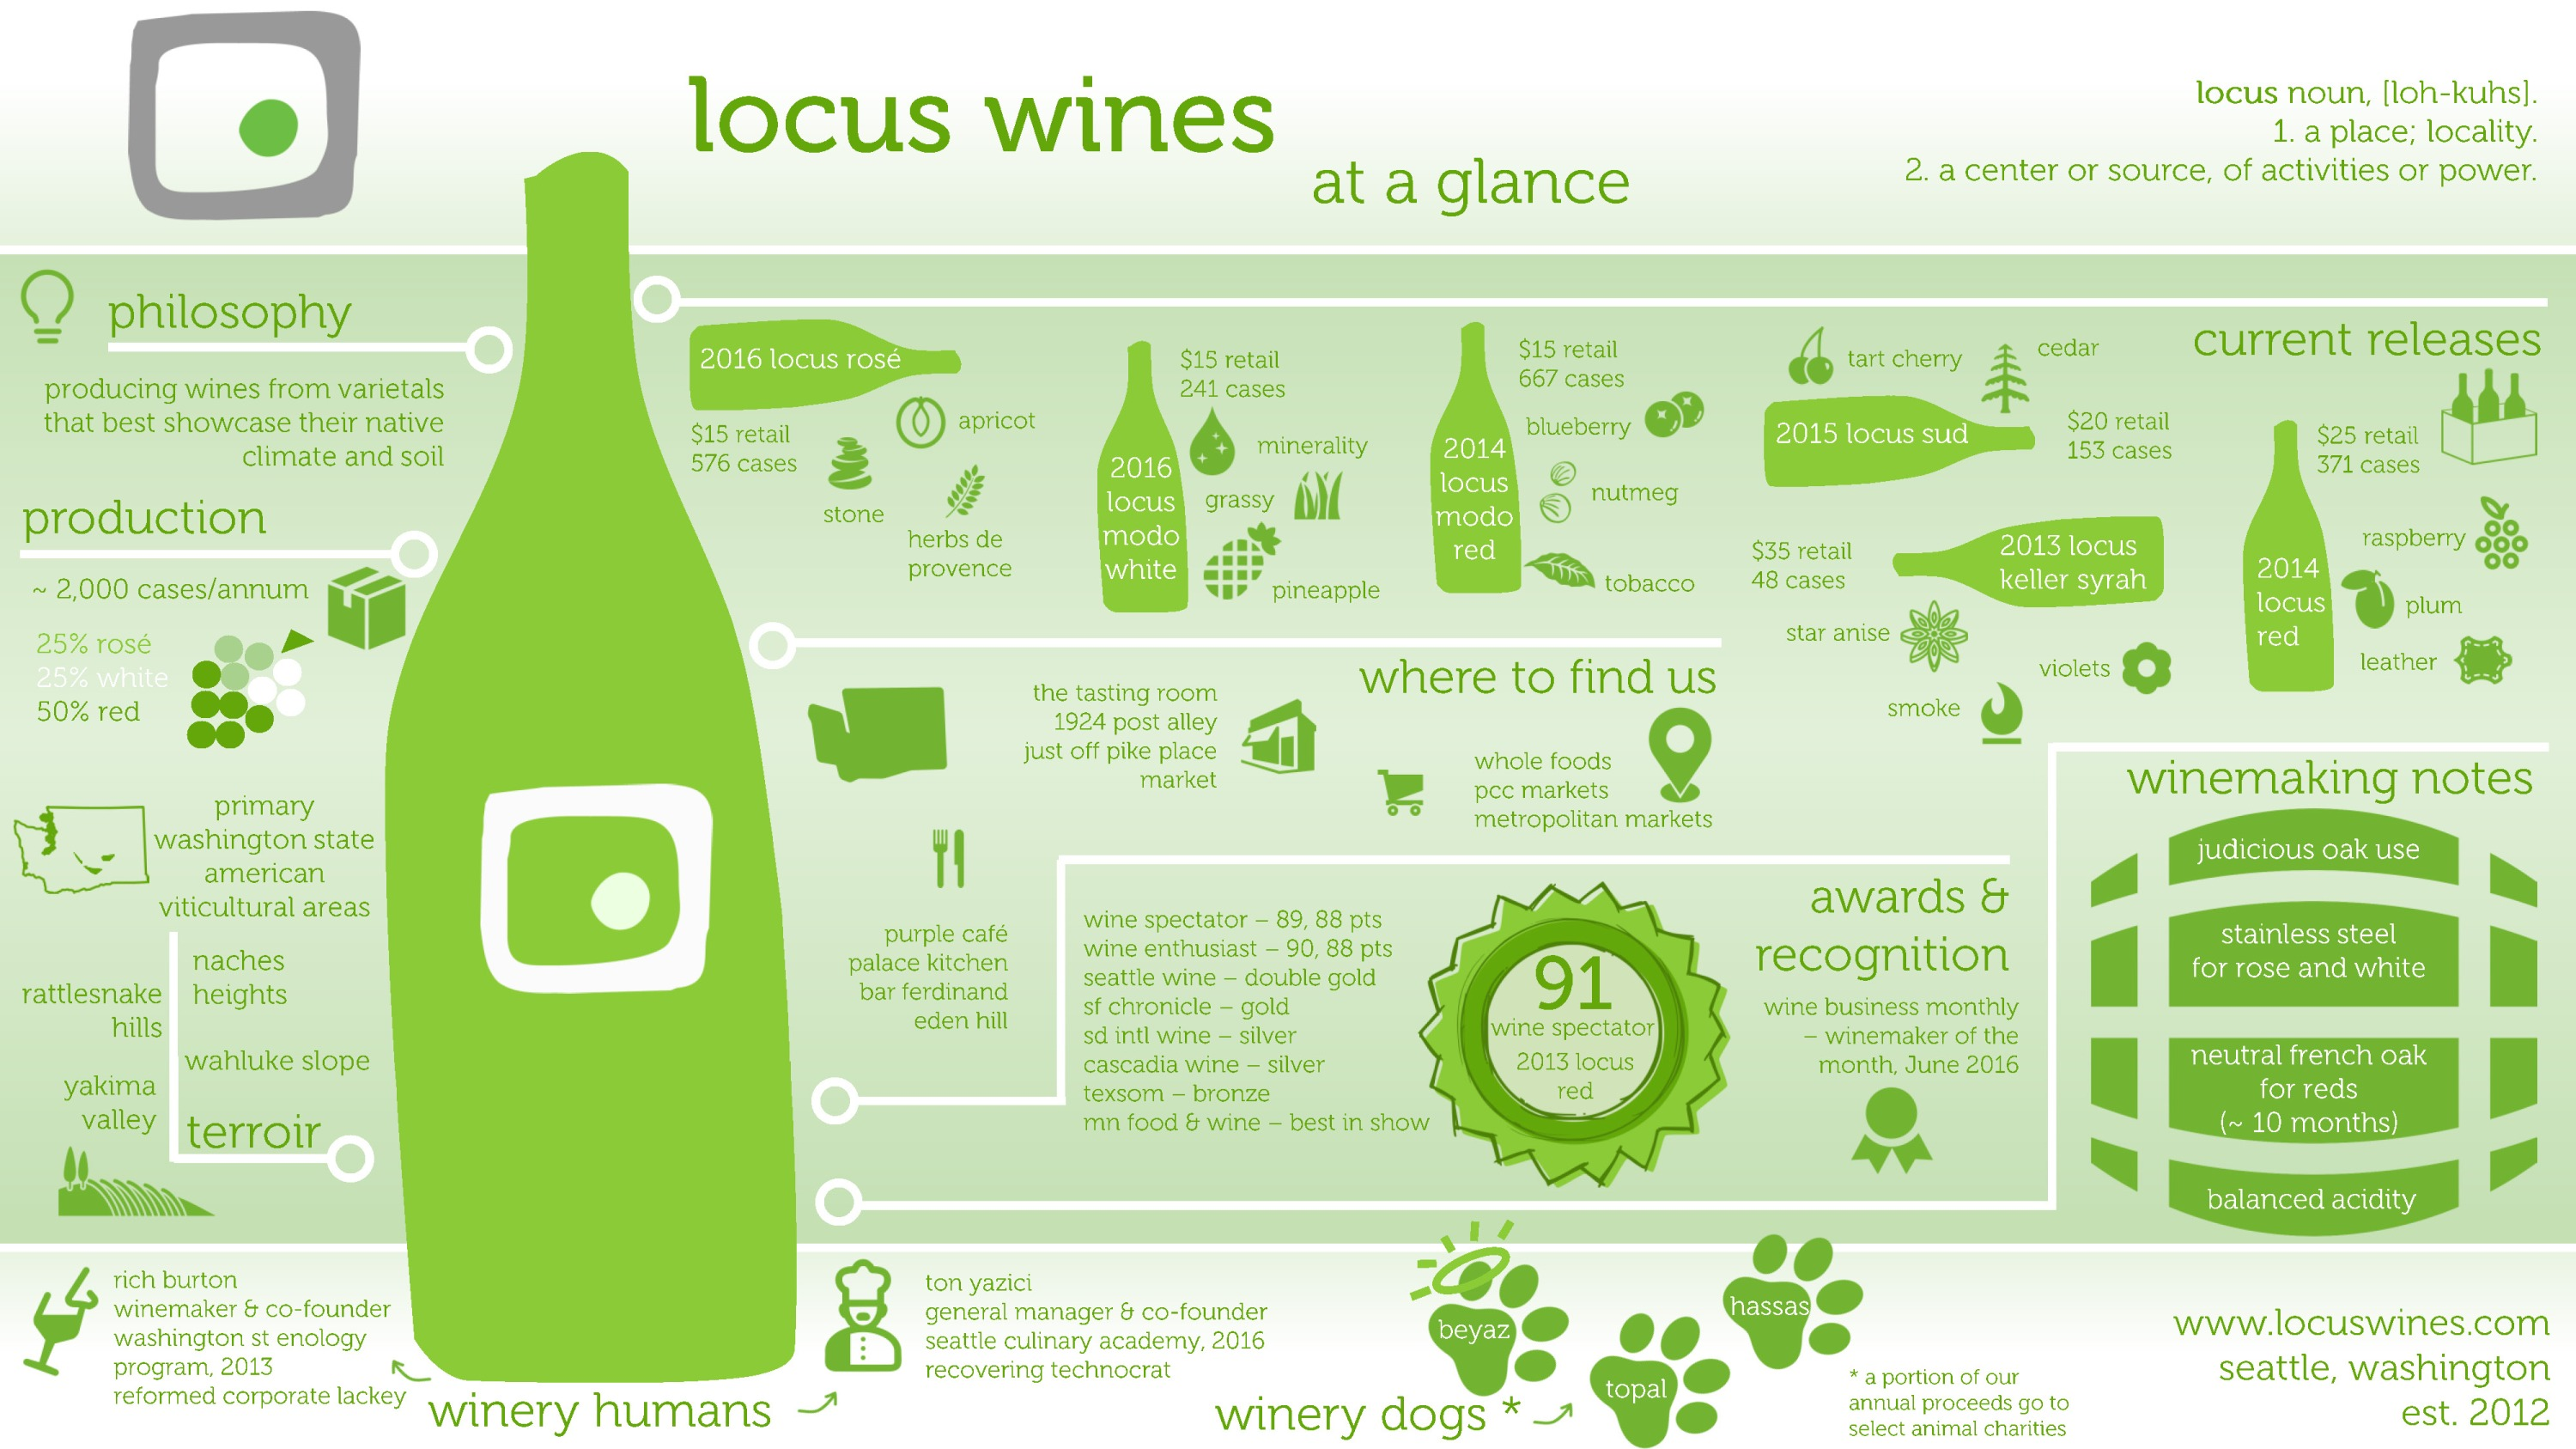 All About Us, Locus Wines, in a Single Image